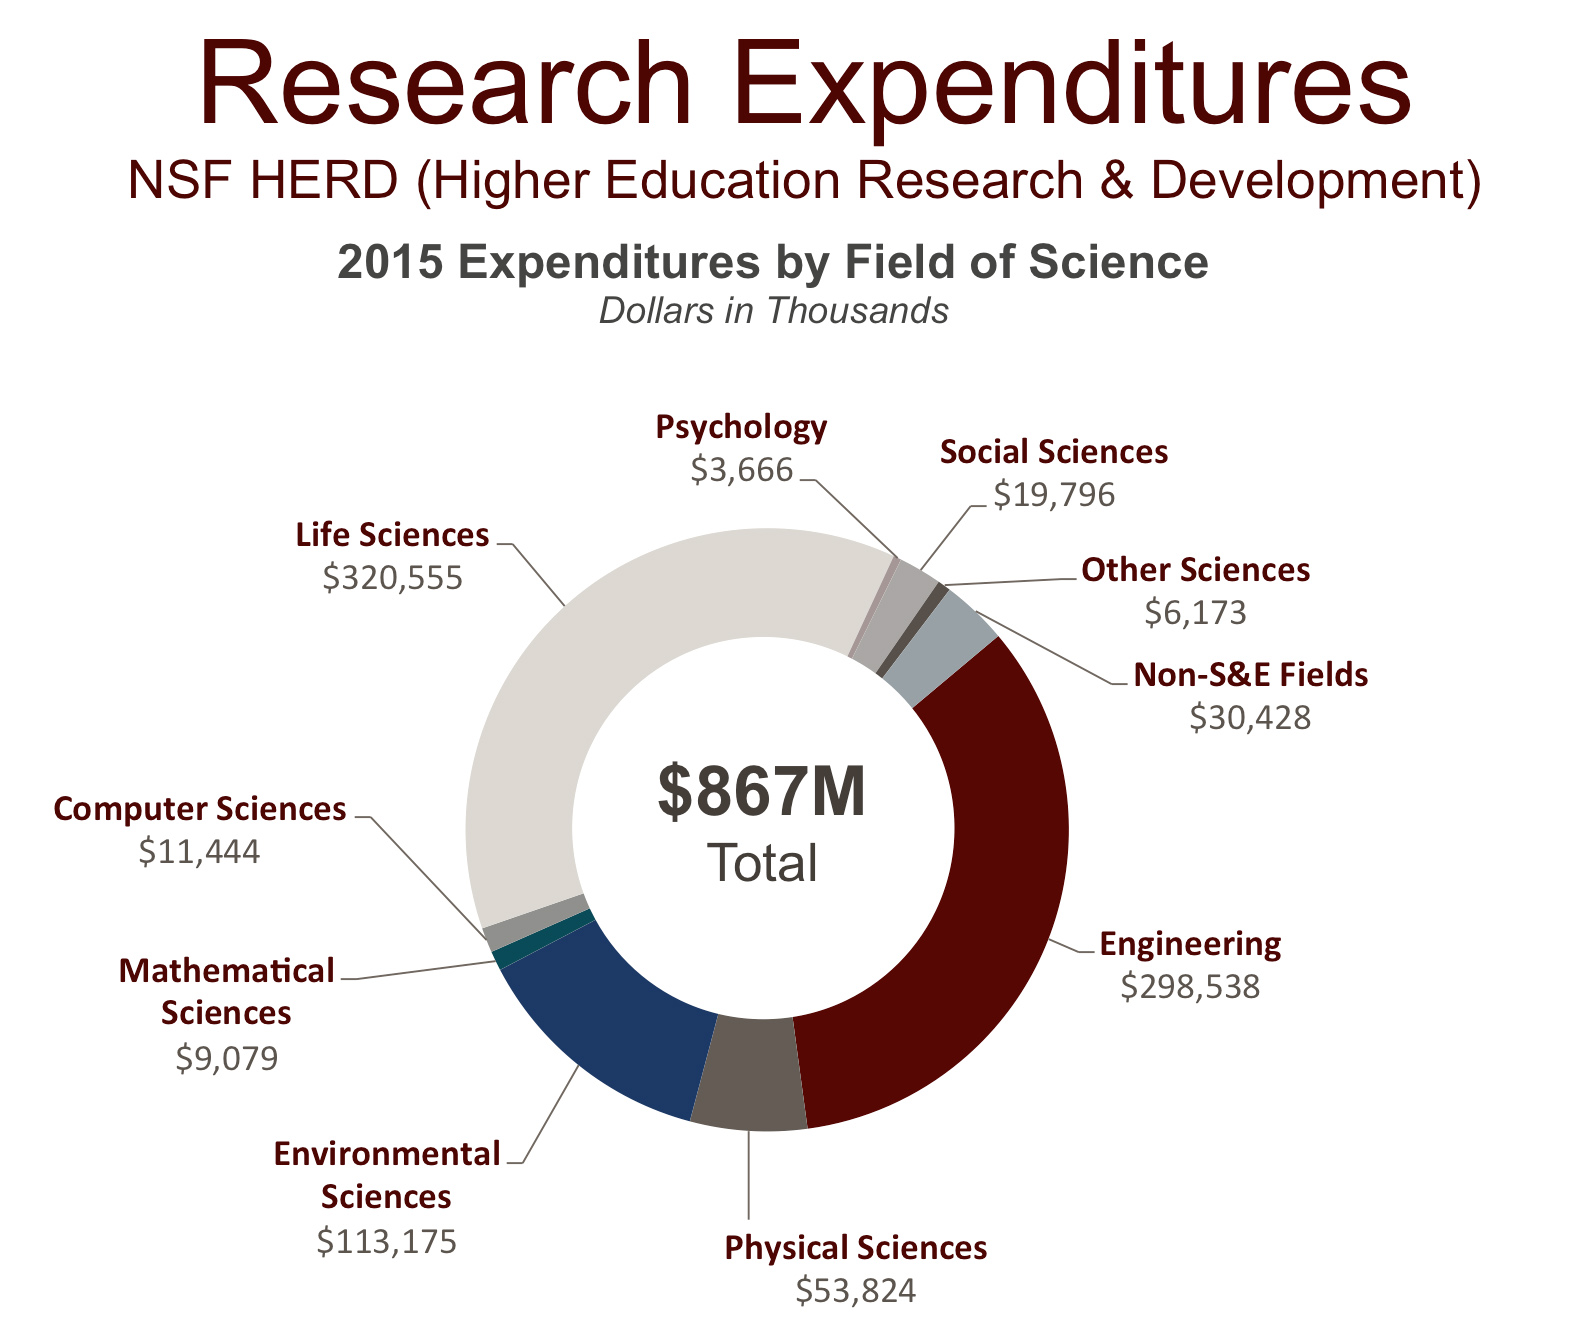 A pie chart detailing Research Expenditures